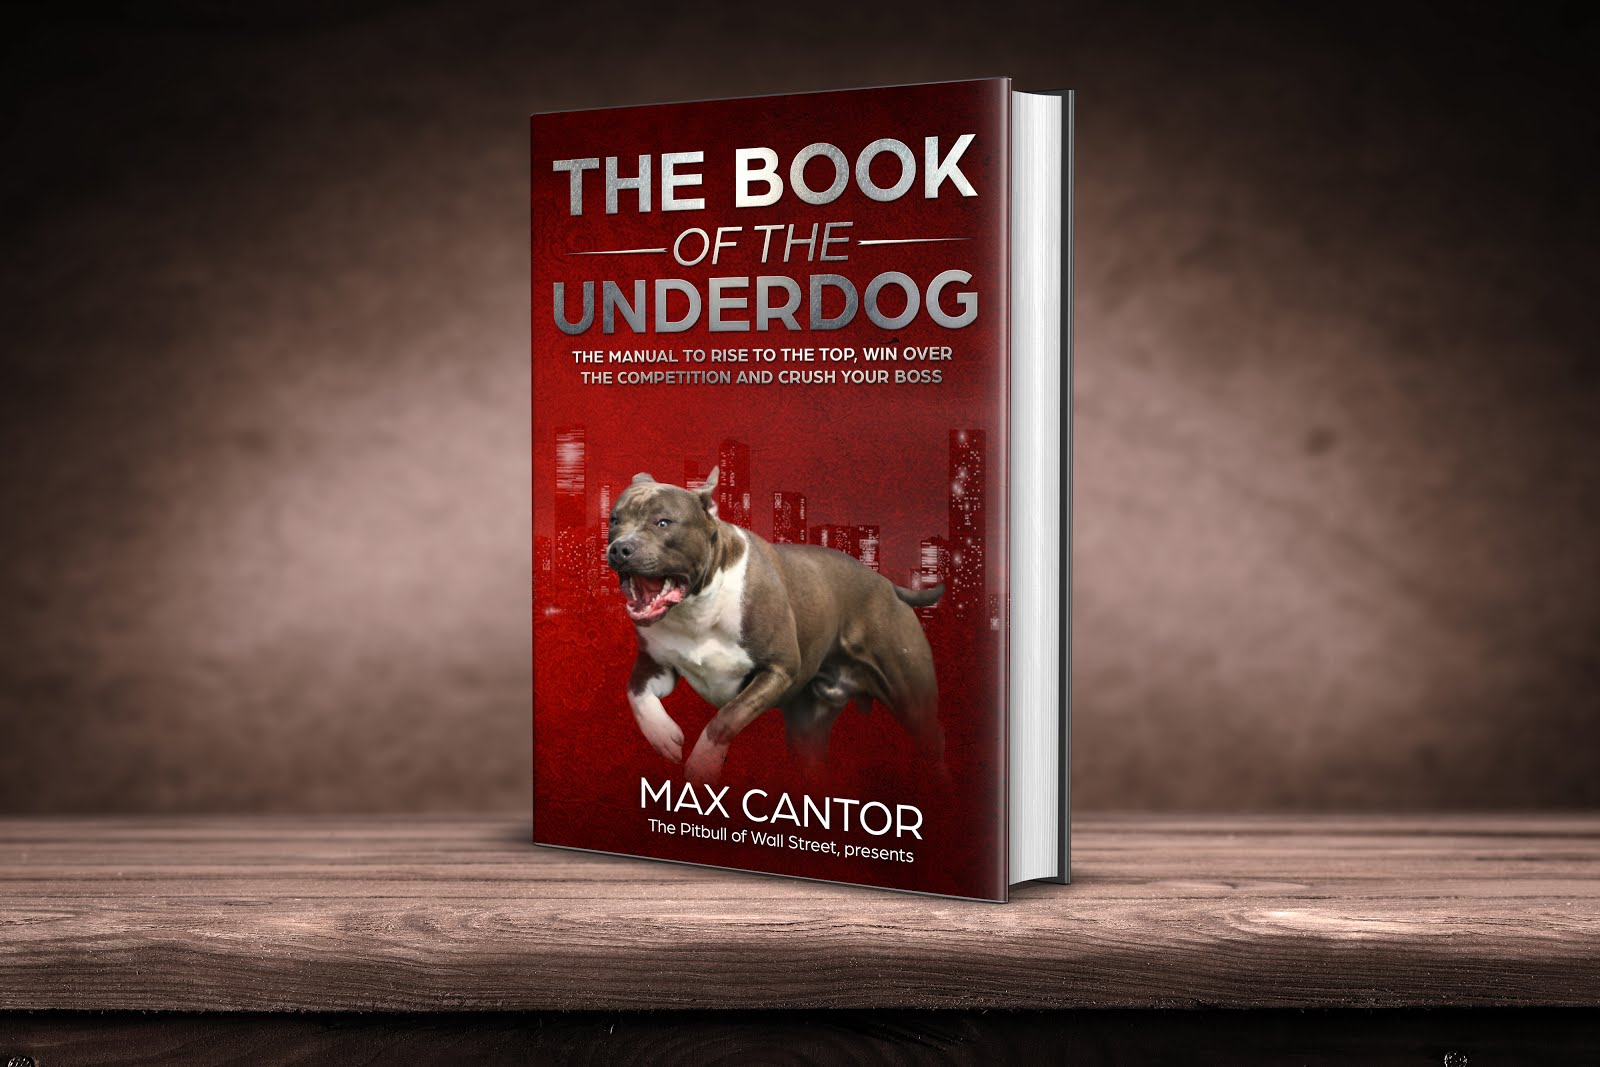 The BOOK OF THE UNDERDOG  is Out